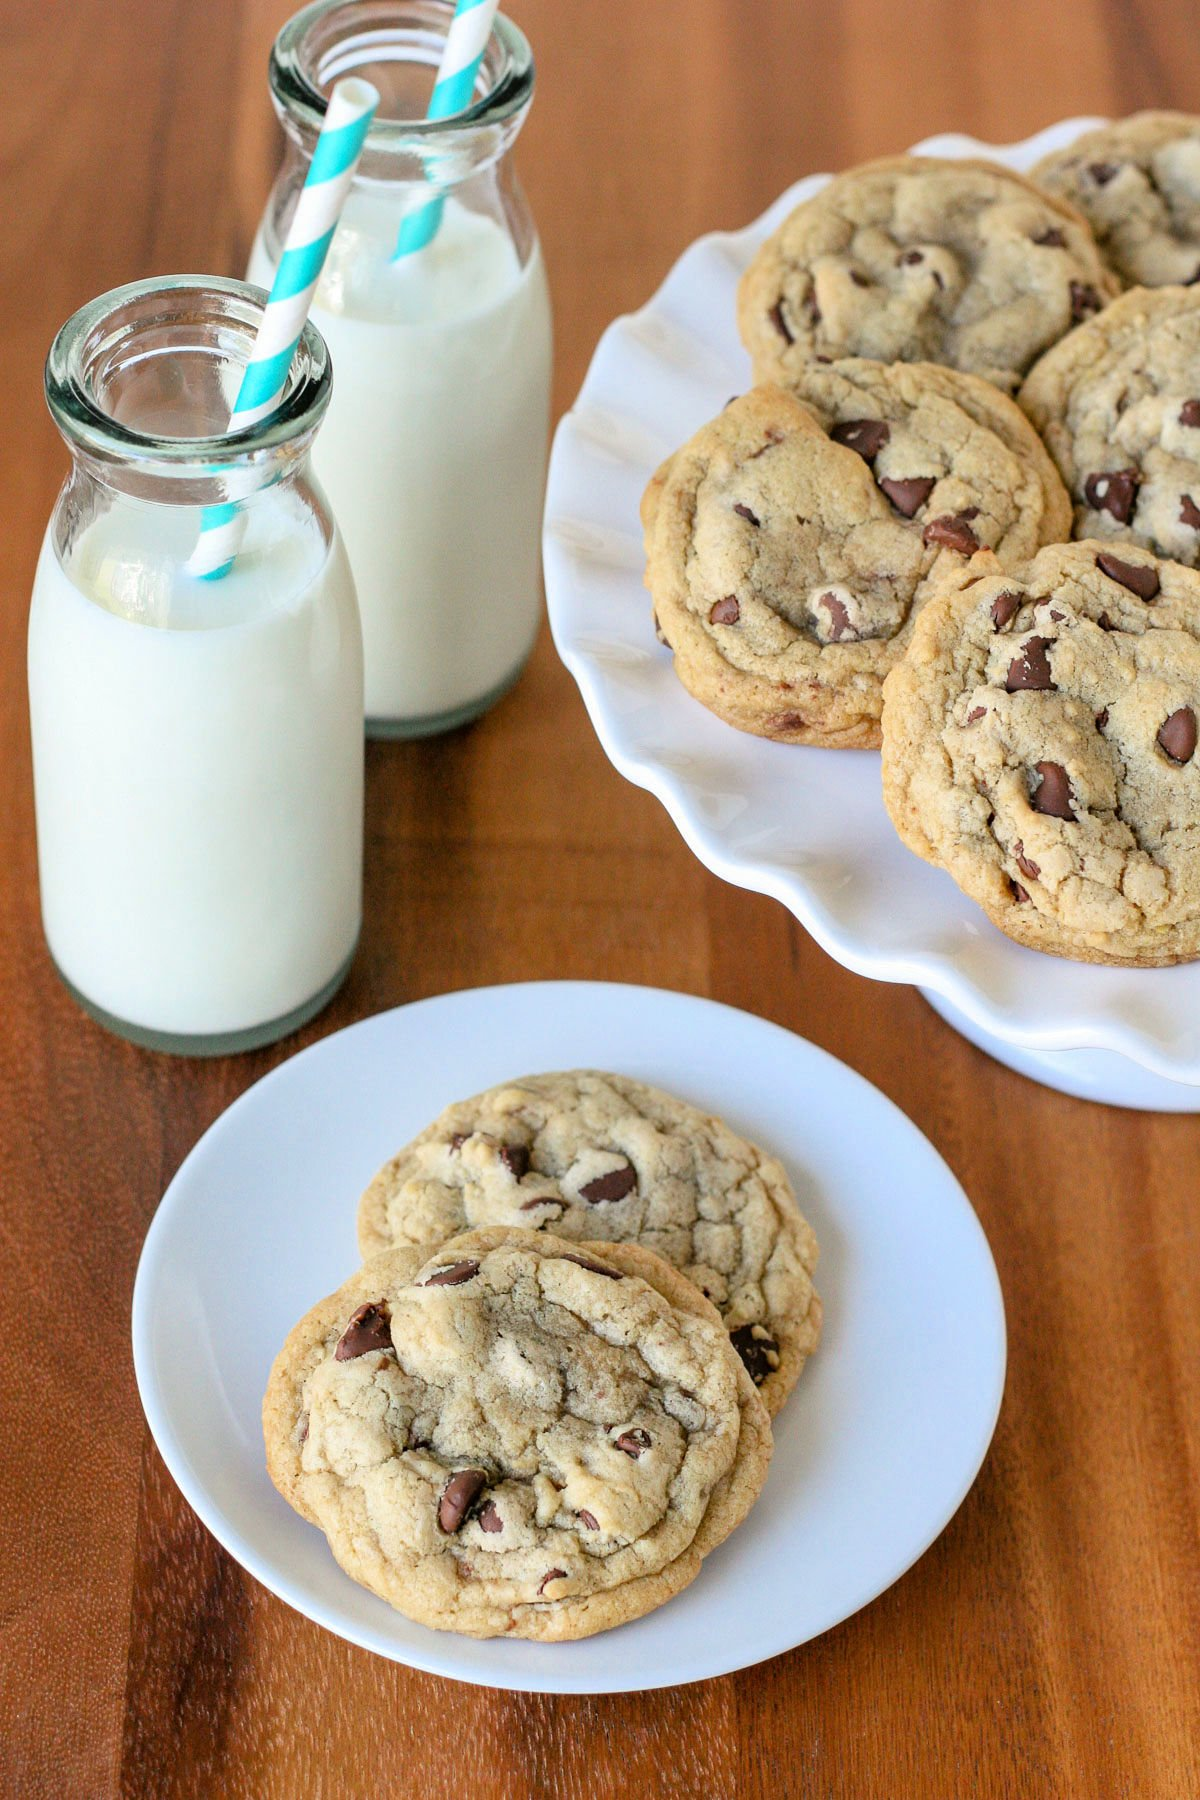 chocolate chip cookies on plate and cake stand with milk bottles in back